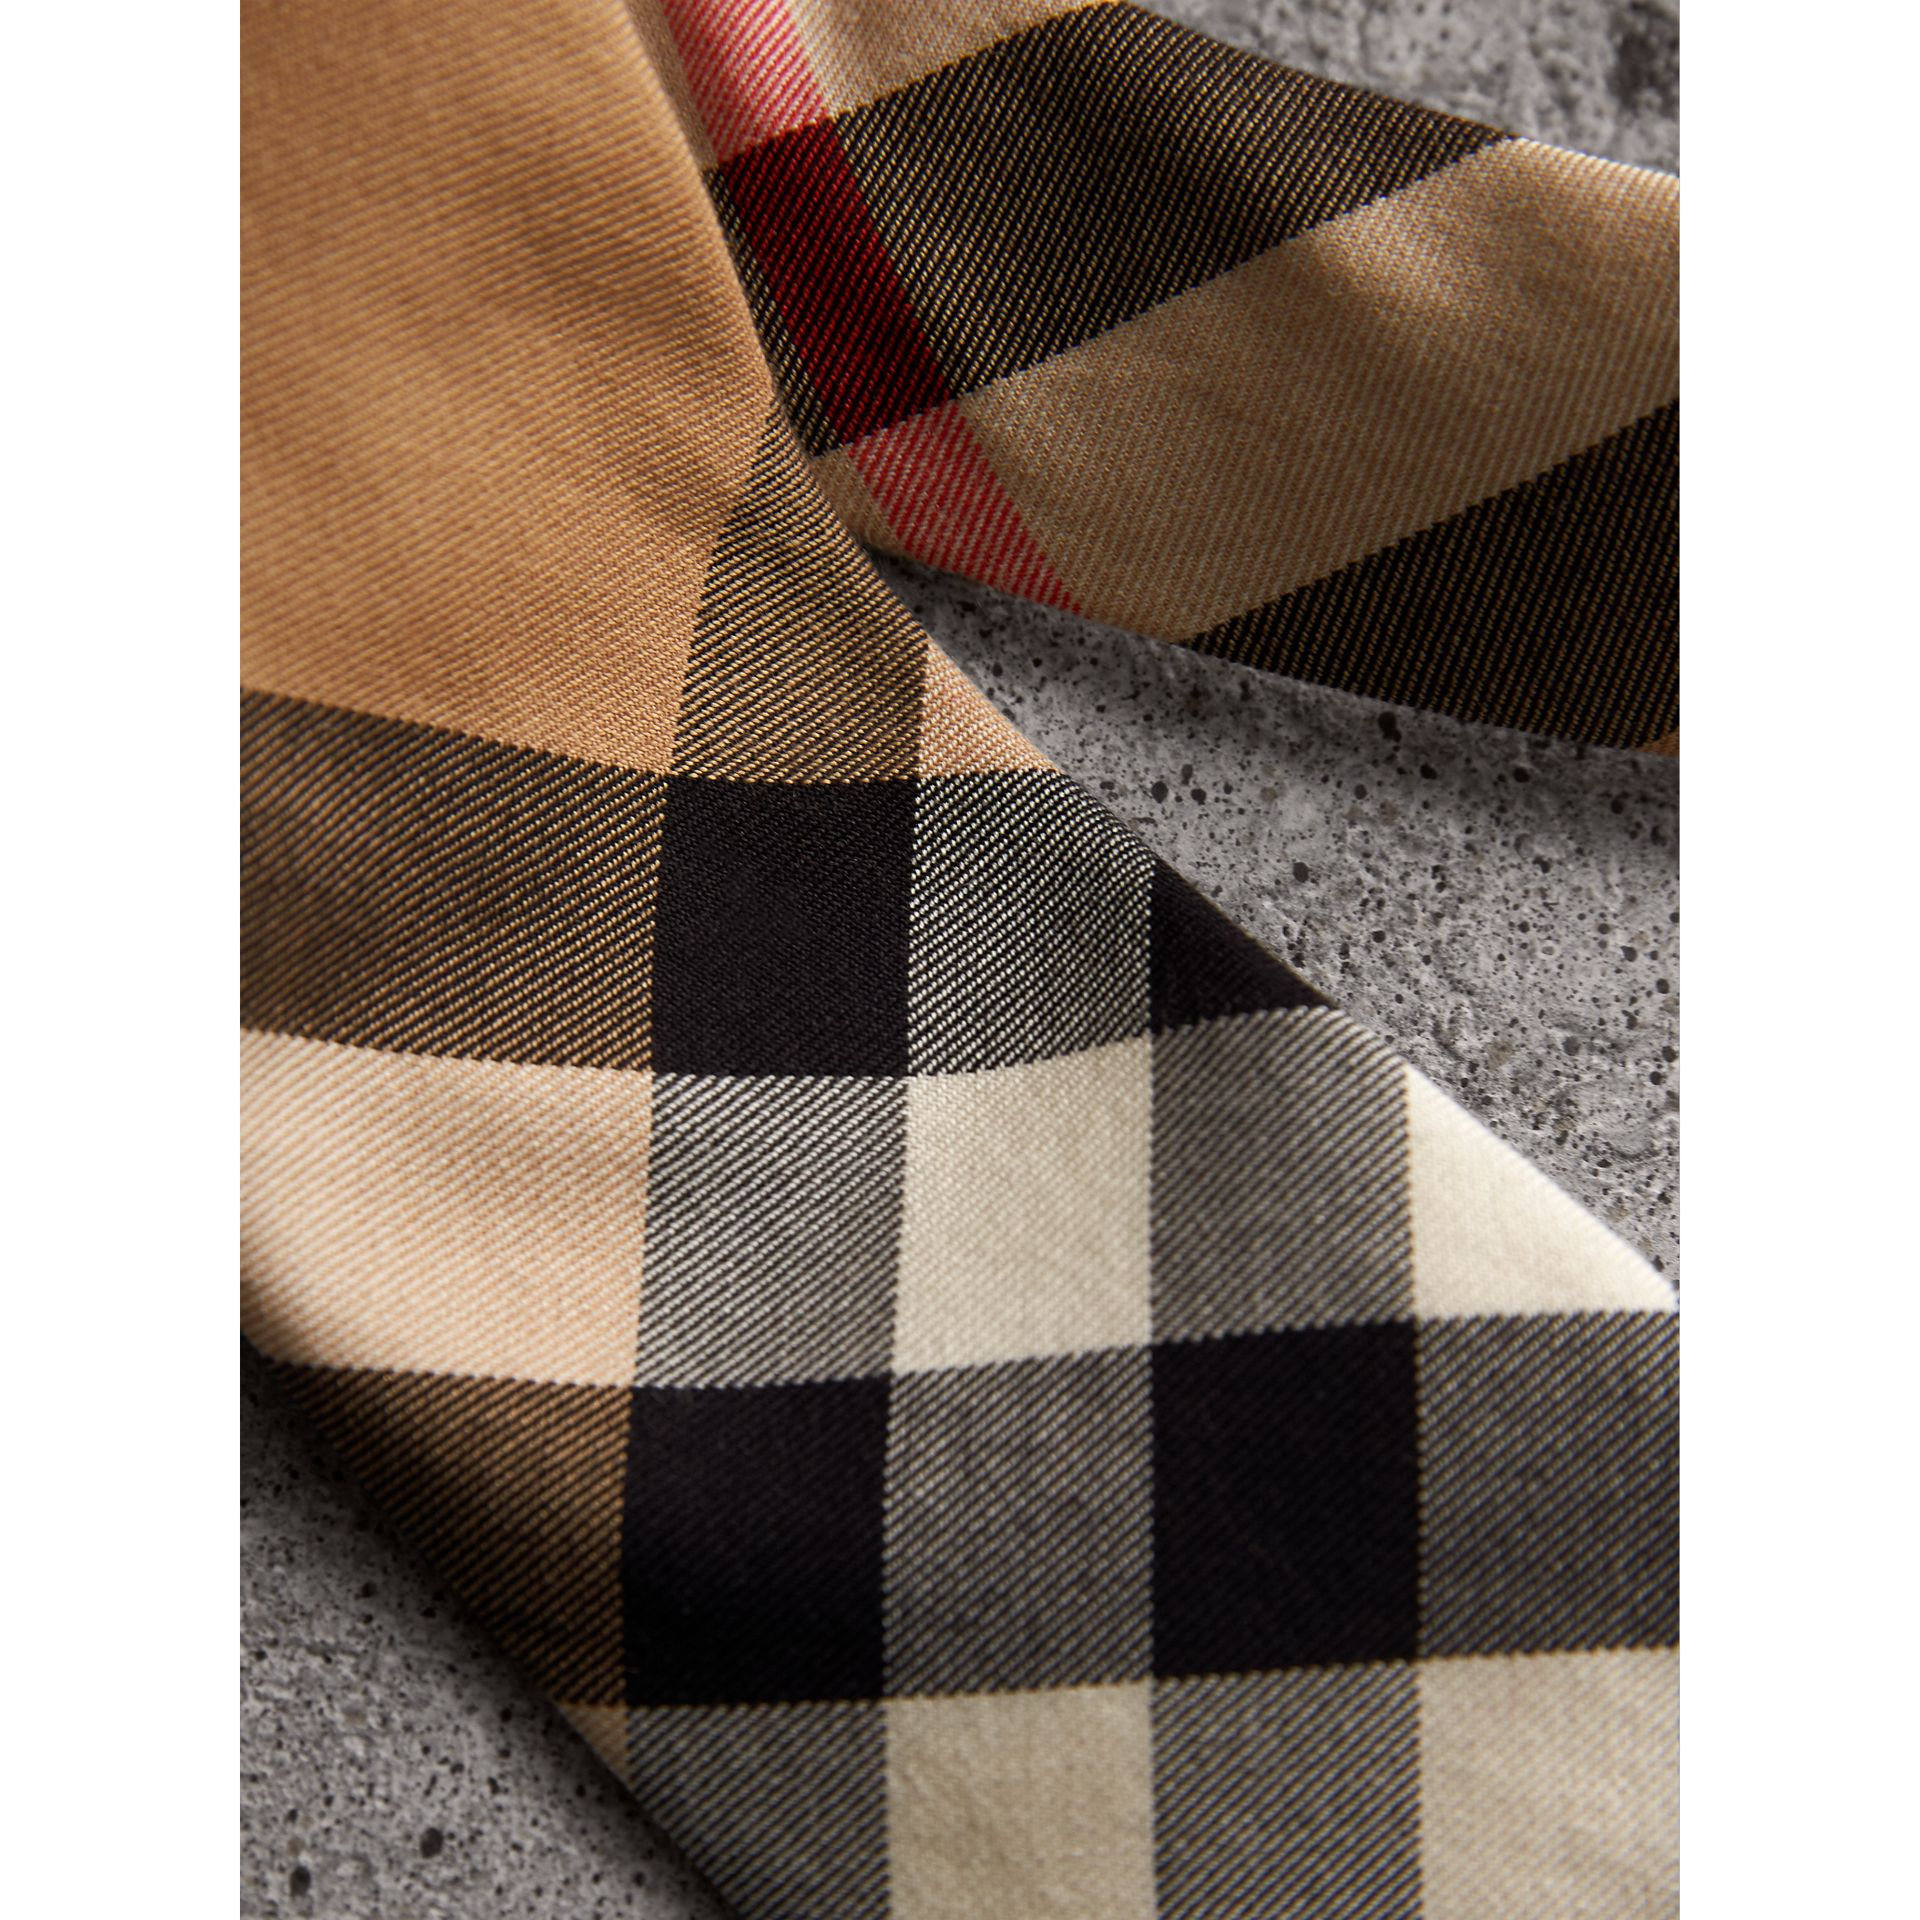 Modern Cut Check Cotton Cashmere Tie in Camel - Men | Burberry Singapore - gallery image 1